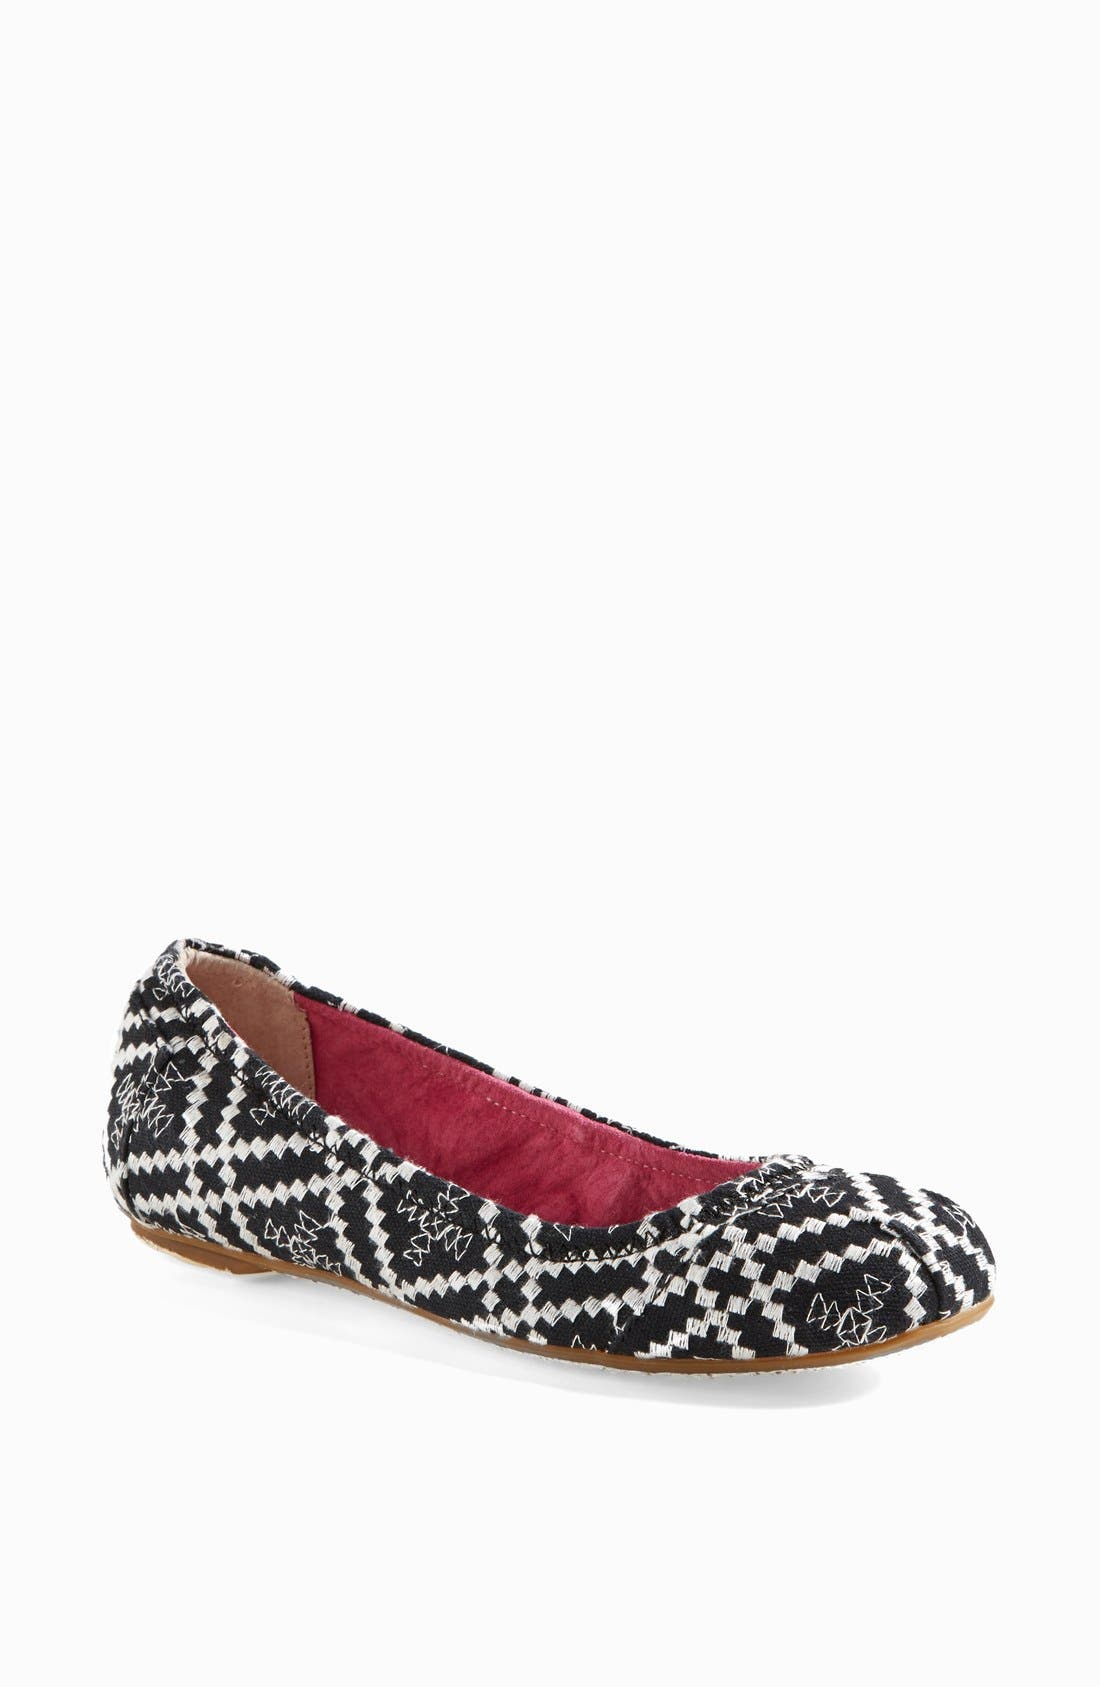 Main Image - TOMS Embroidered Ballet Flat (Women)